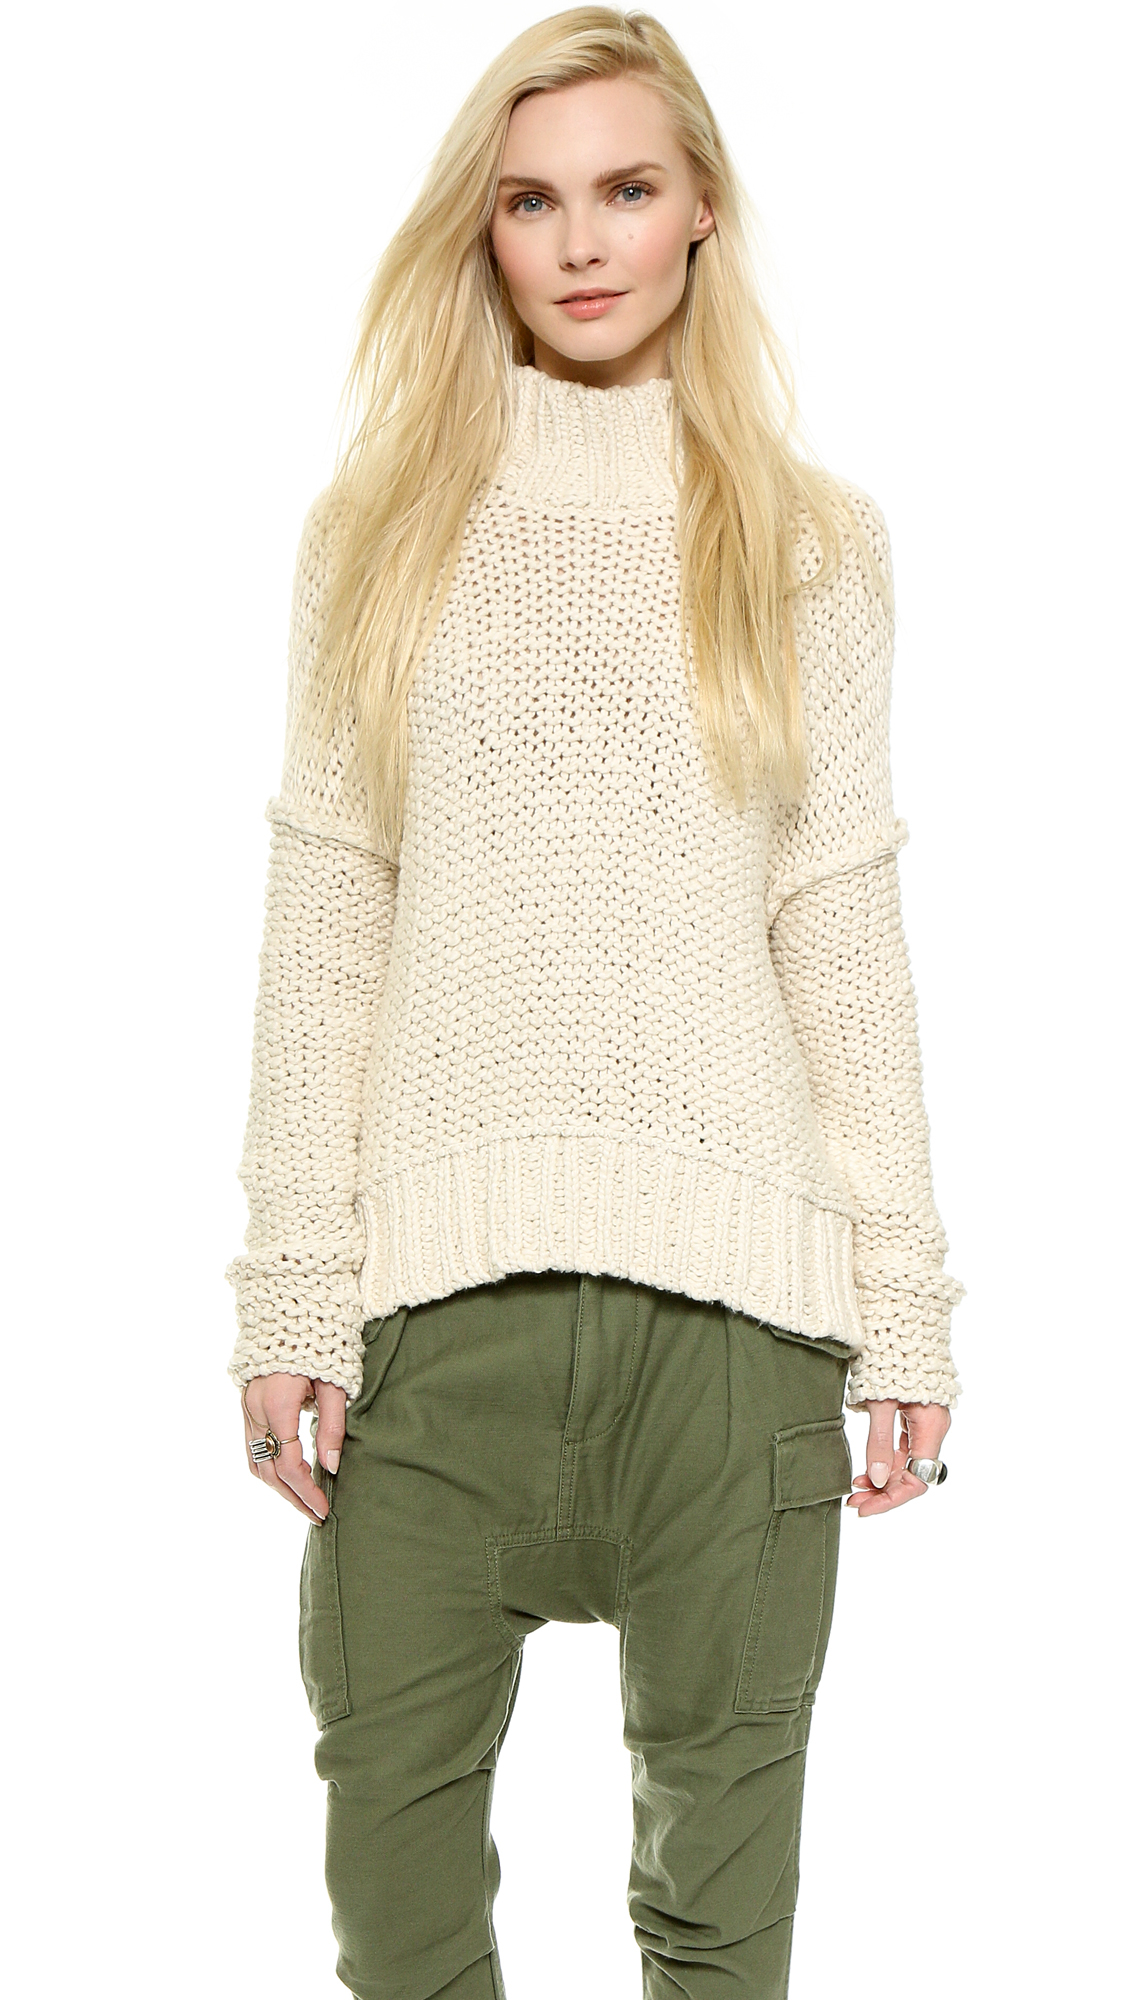 Free people Long Summer Pullover Sweater - Deep Navy in Natural | Lyst